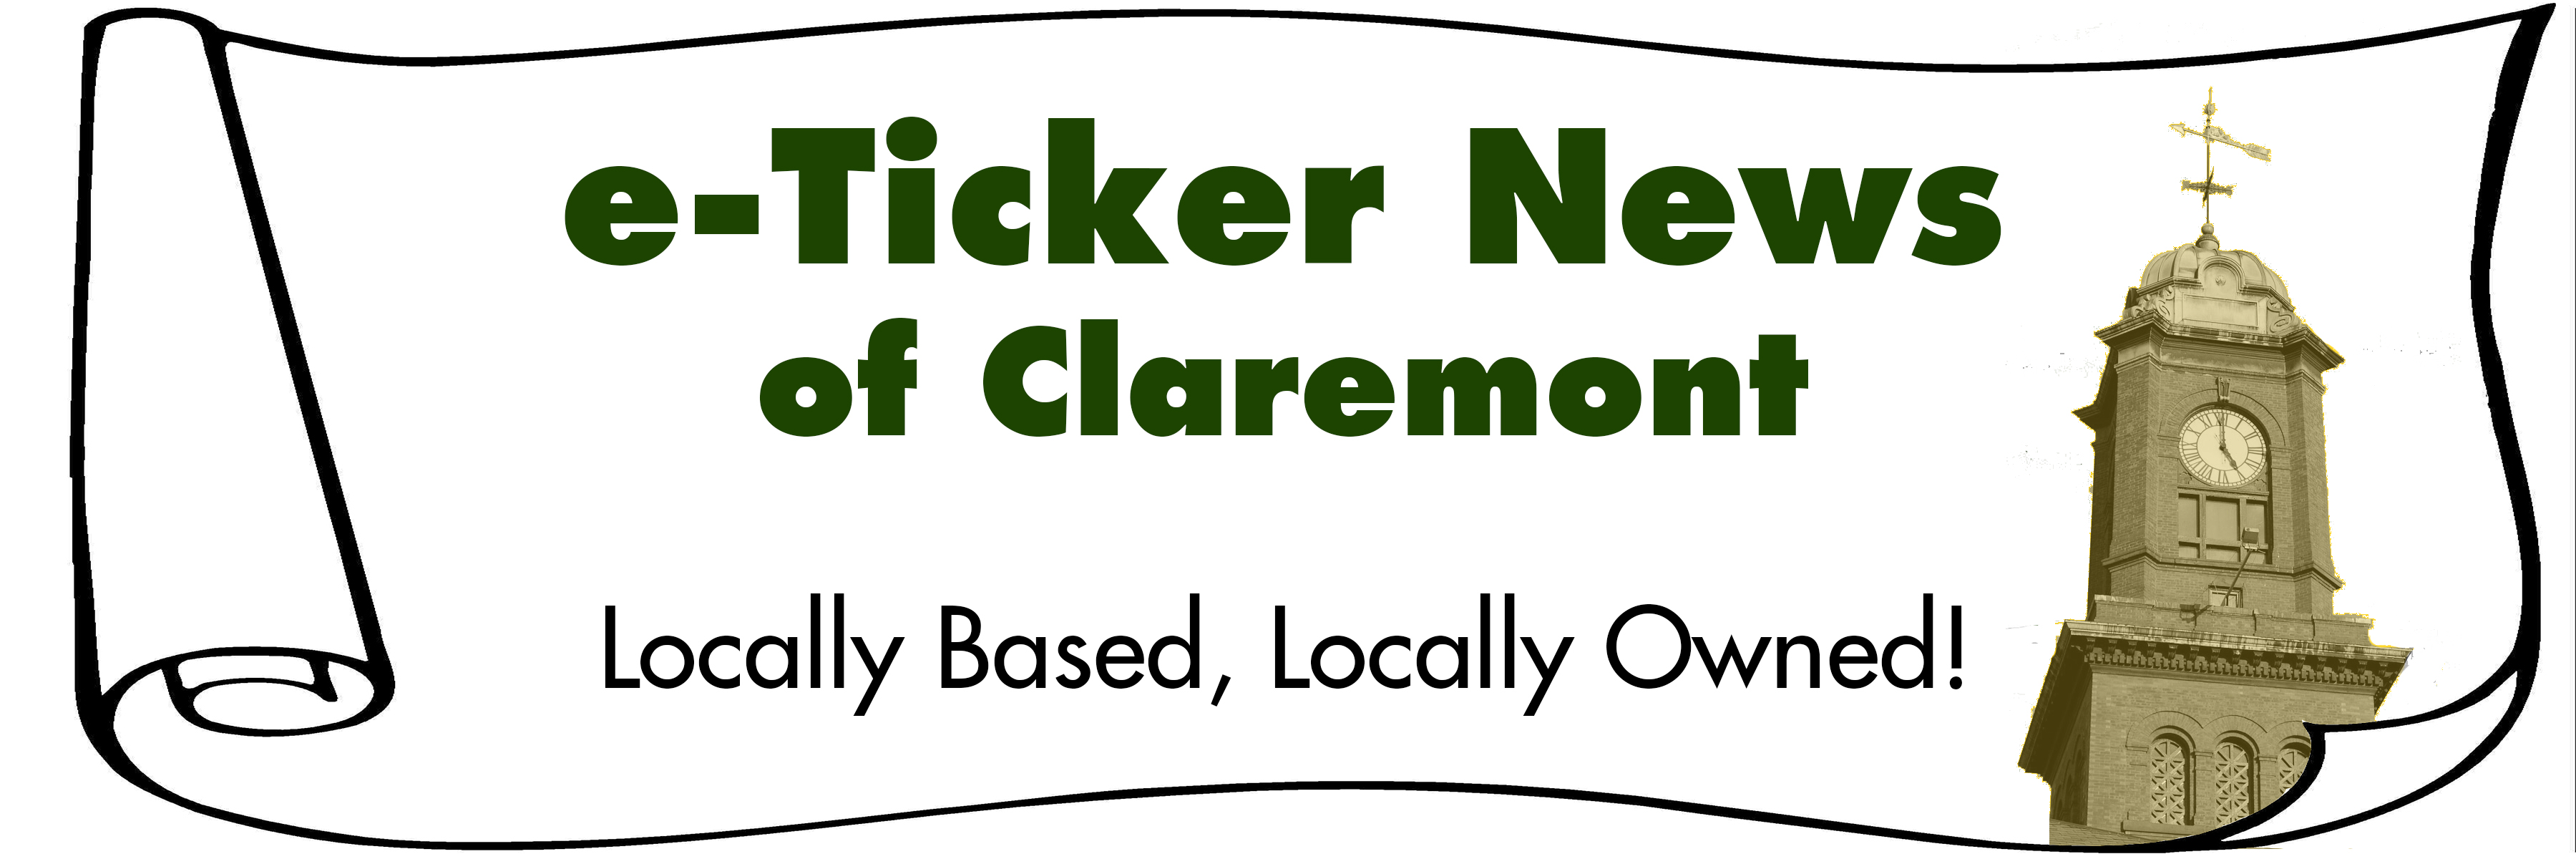 E-Ticker News of Claremont NH